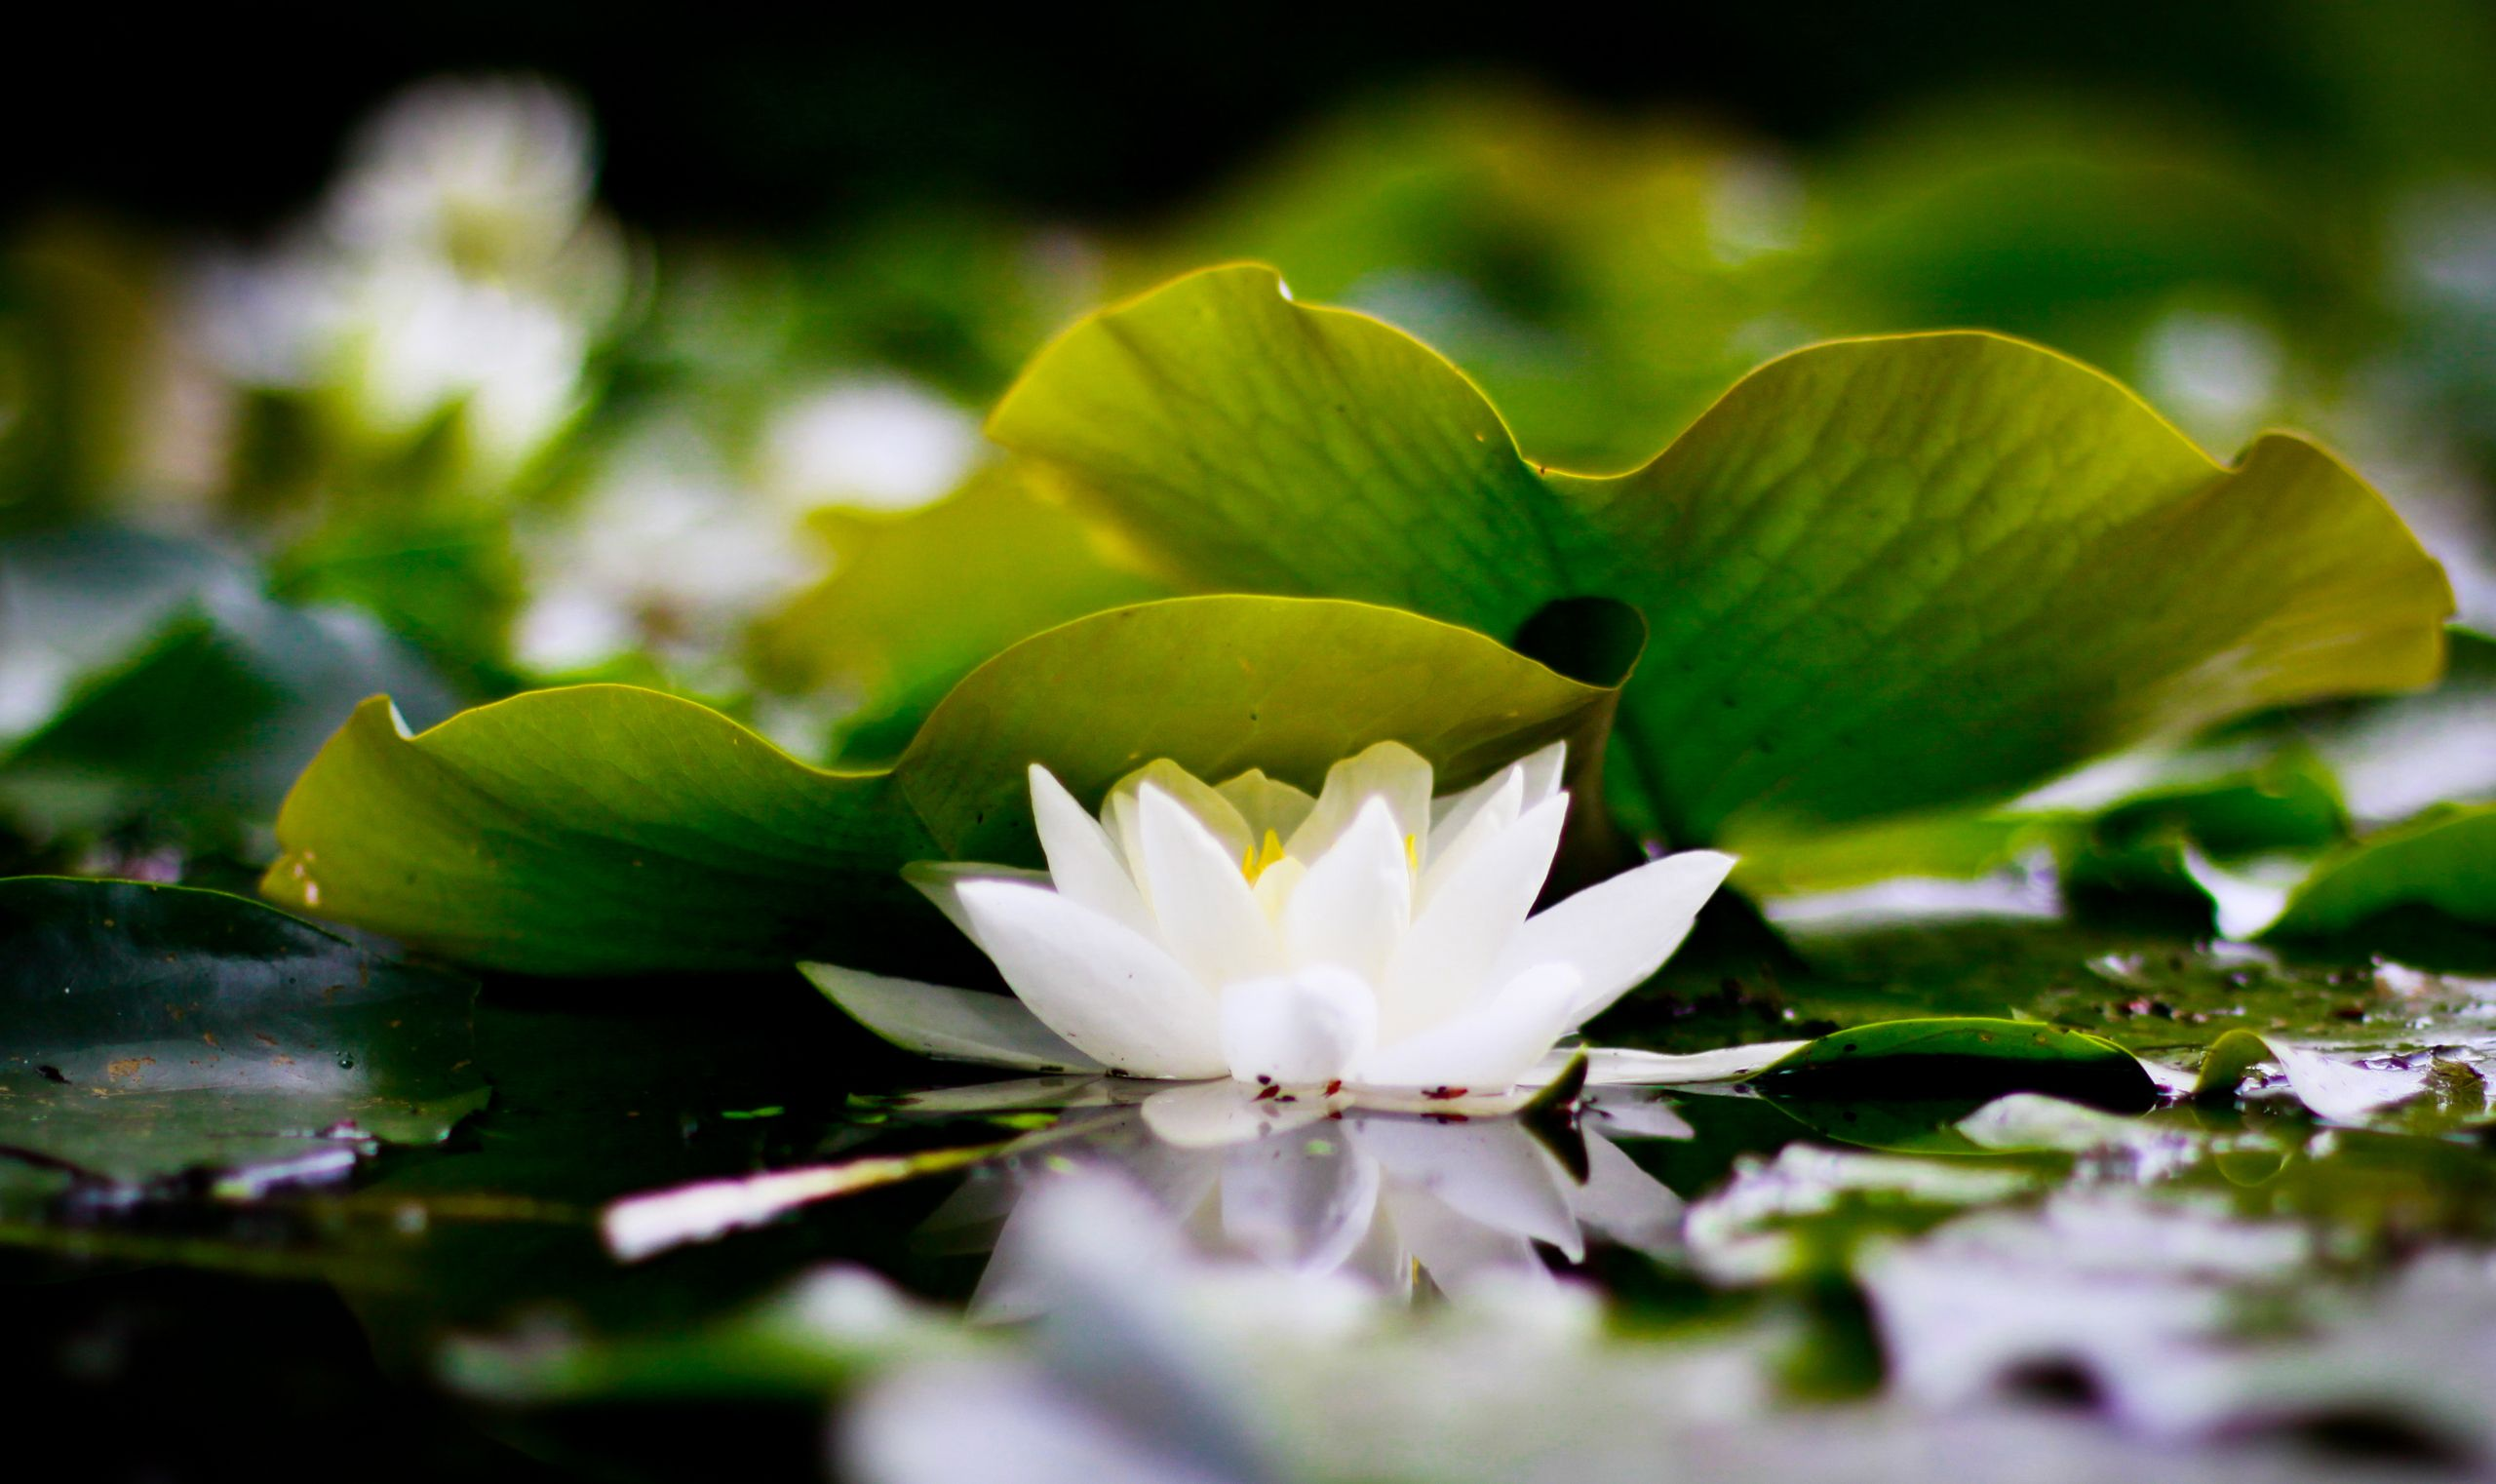 White Lotus Flower Wallpaper Free 027y 2560x1522 Px 218 Mb